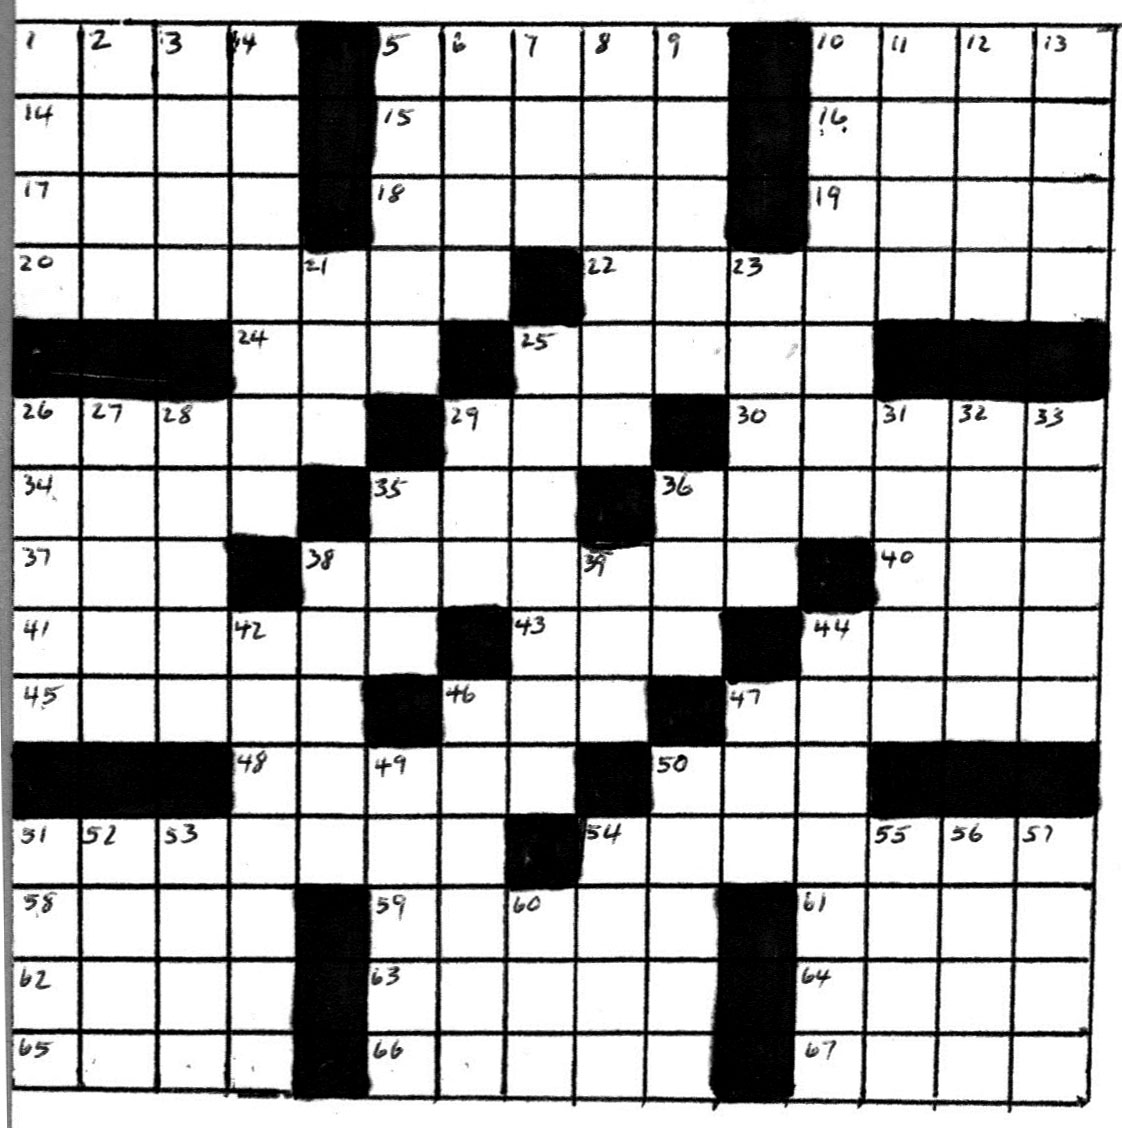 Crossword Puzzle By Bob Lee January 2012 The Quiviran